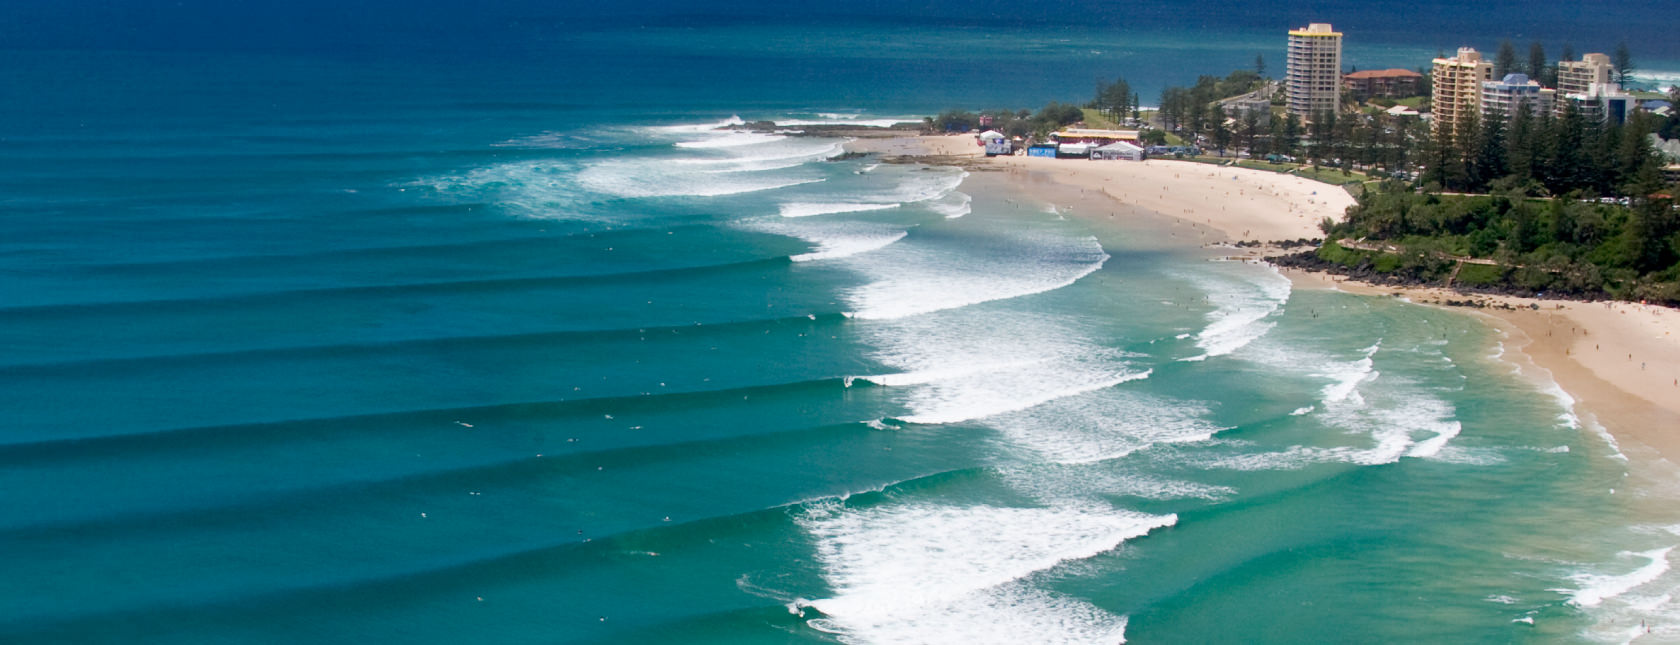 The southern beaches of the Gold Coast have a lower supply of property and more restrictive zoning, making them a better investment than the higher-density areas at the northern end of the coast.